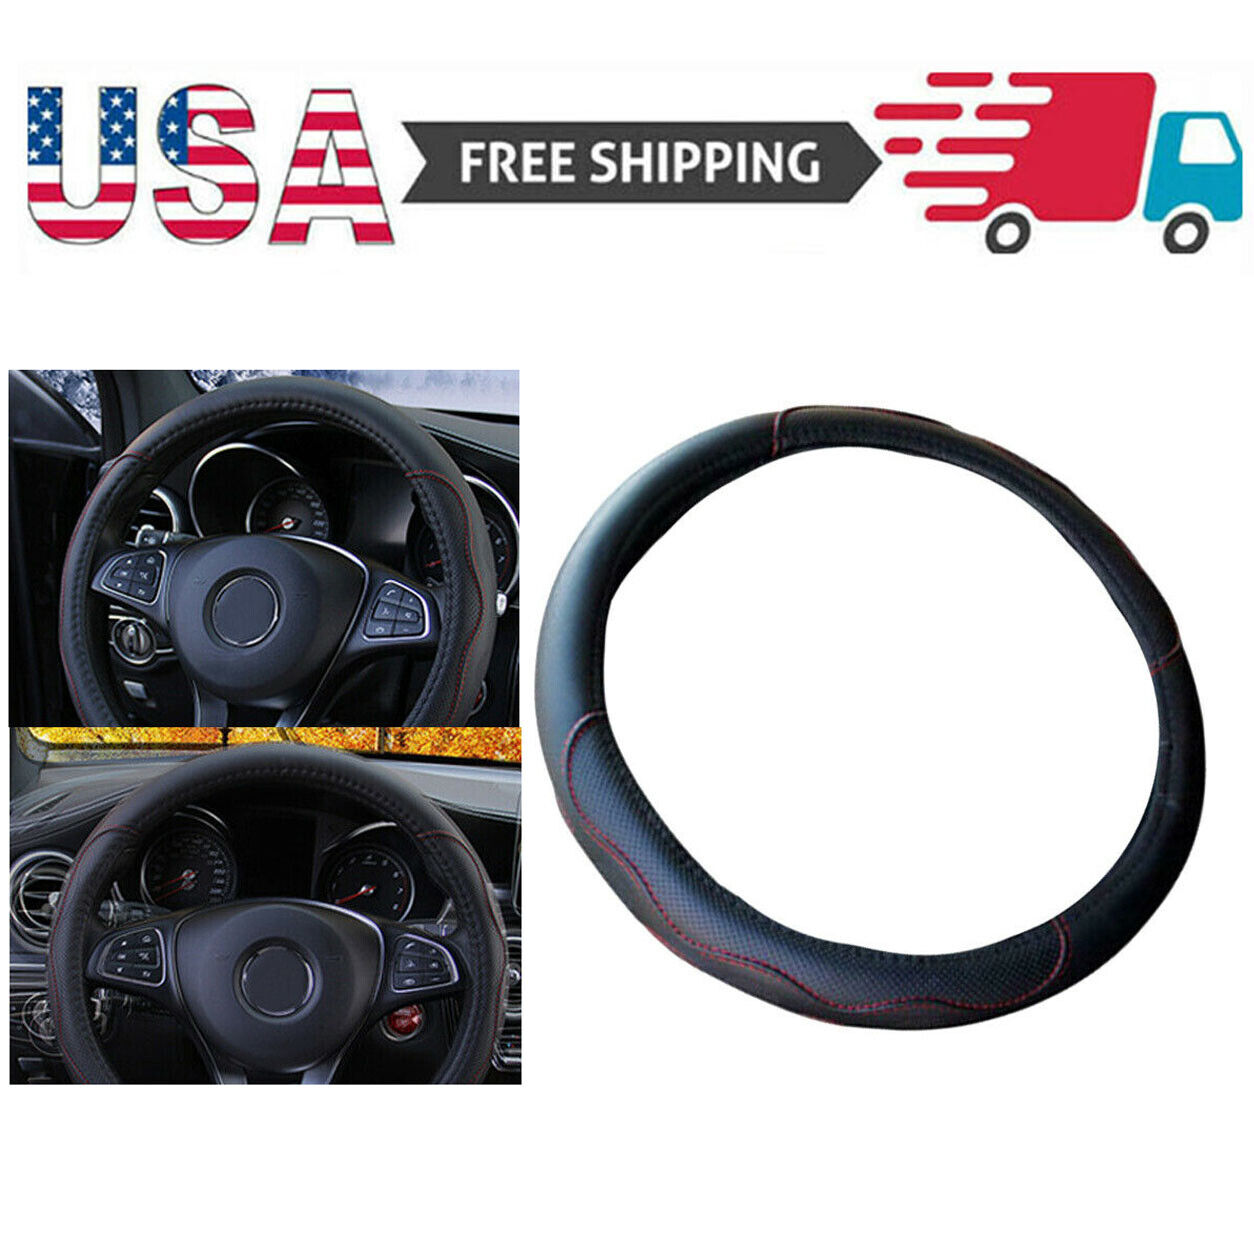 15″/37-38CM PU Leather Car Steering Wheel Cover Good Grip Car Accessories USA Car & Truck Parts